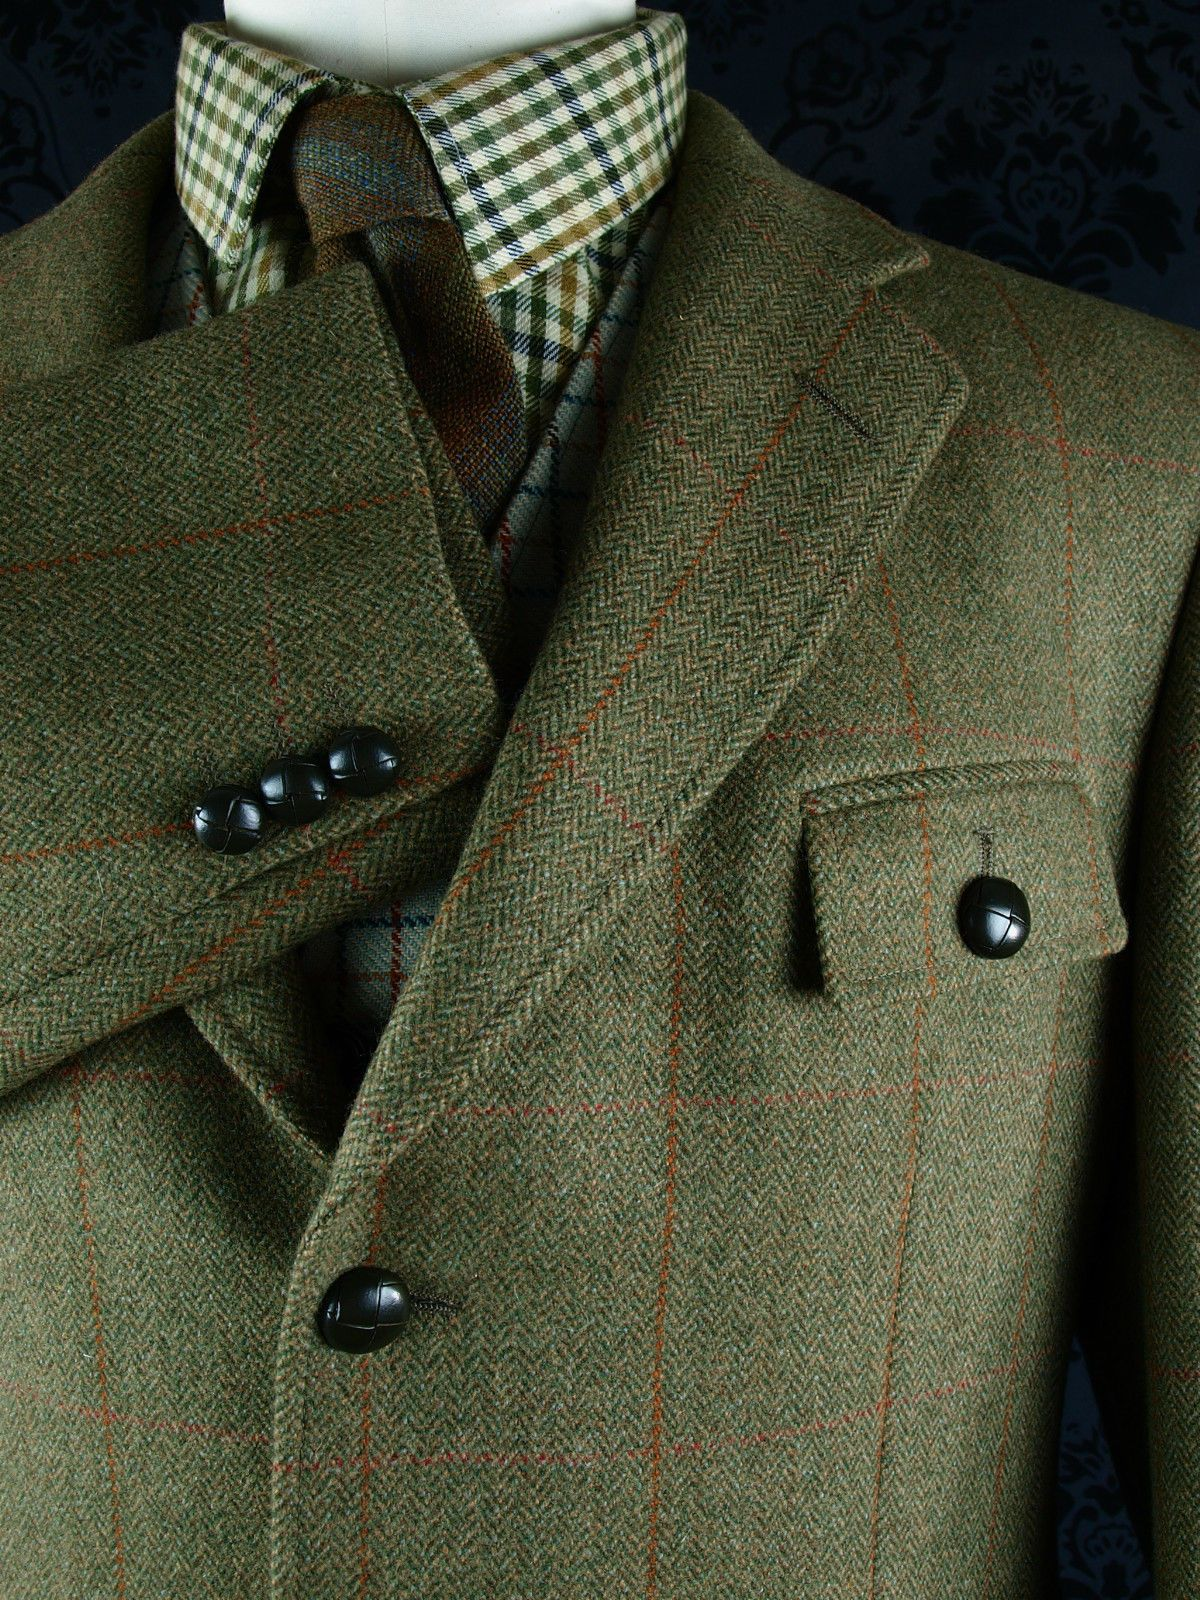 New Superb Mens Tweed Austin Reed Norfolk Shooting Hunting Jacket Blazer 42 S Tweed Blazer Outfit Tweed Men Hunting Jackets